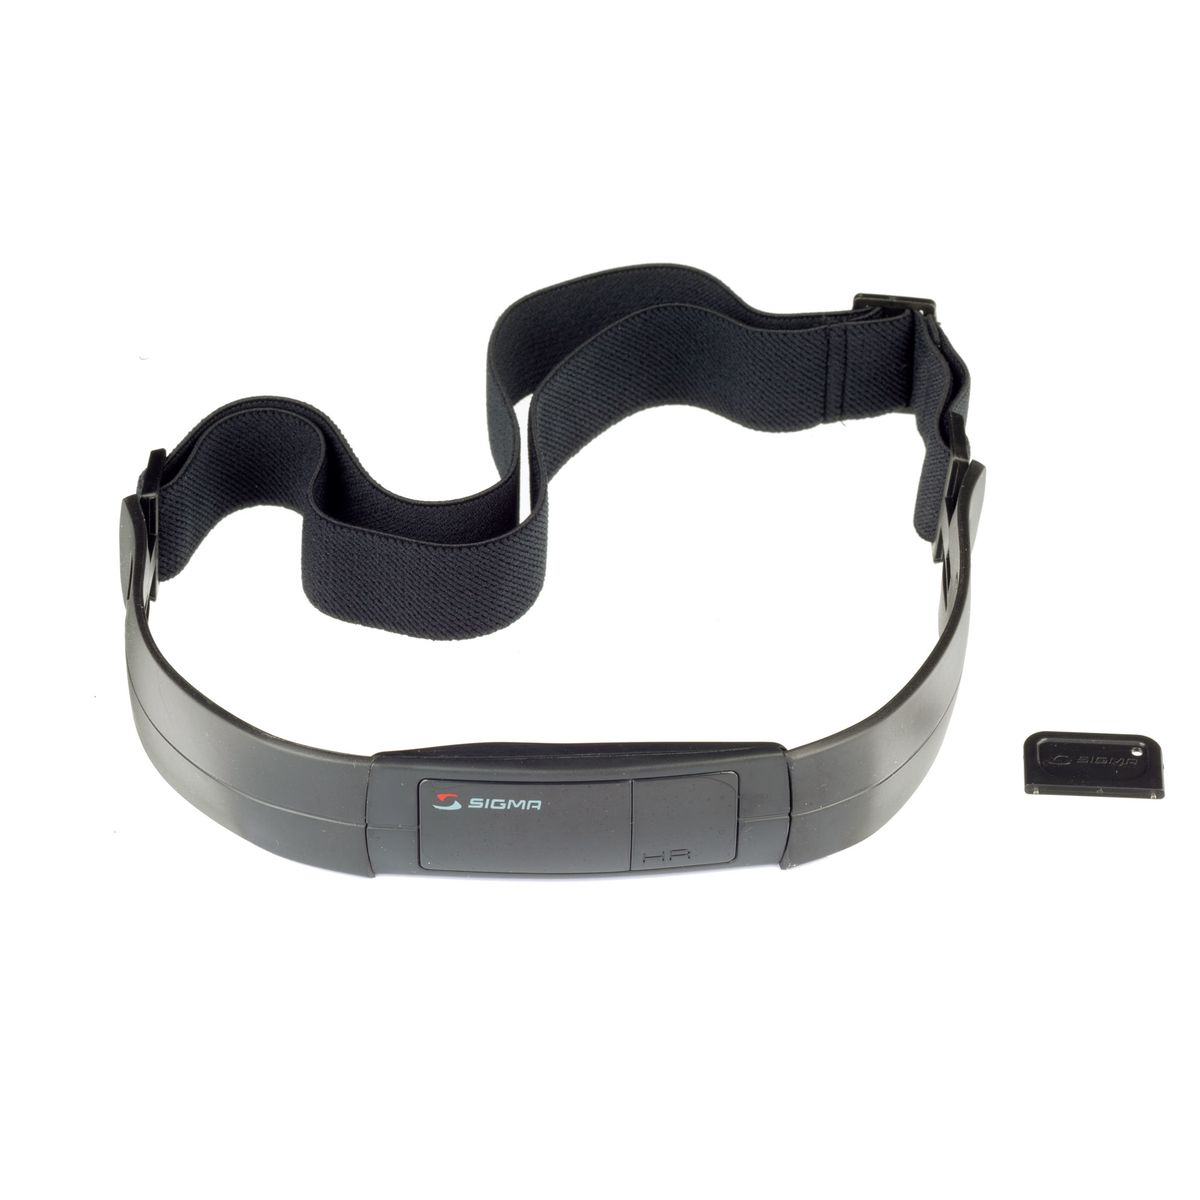 Sigma STS chest strap | item_misc